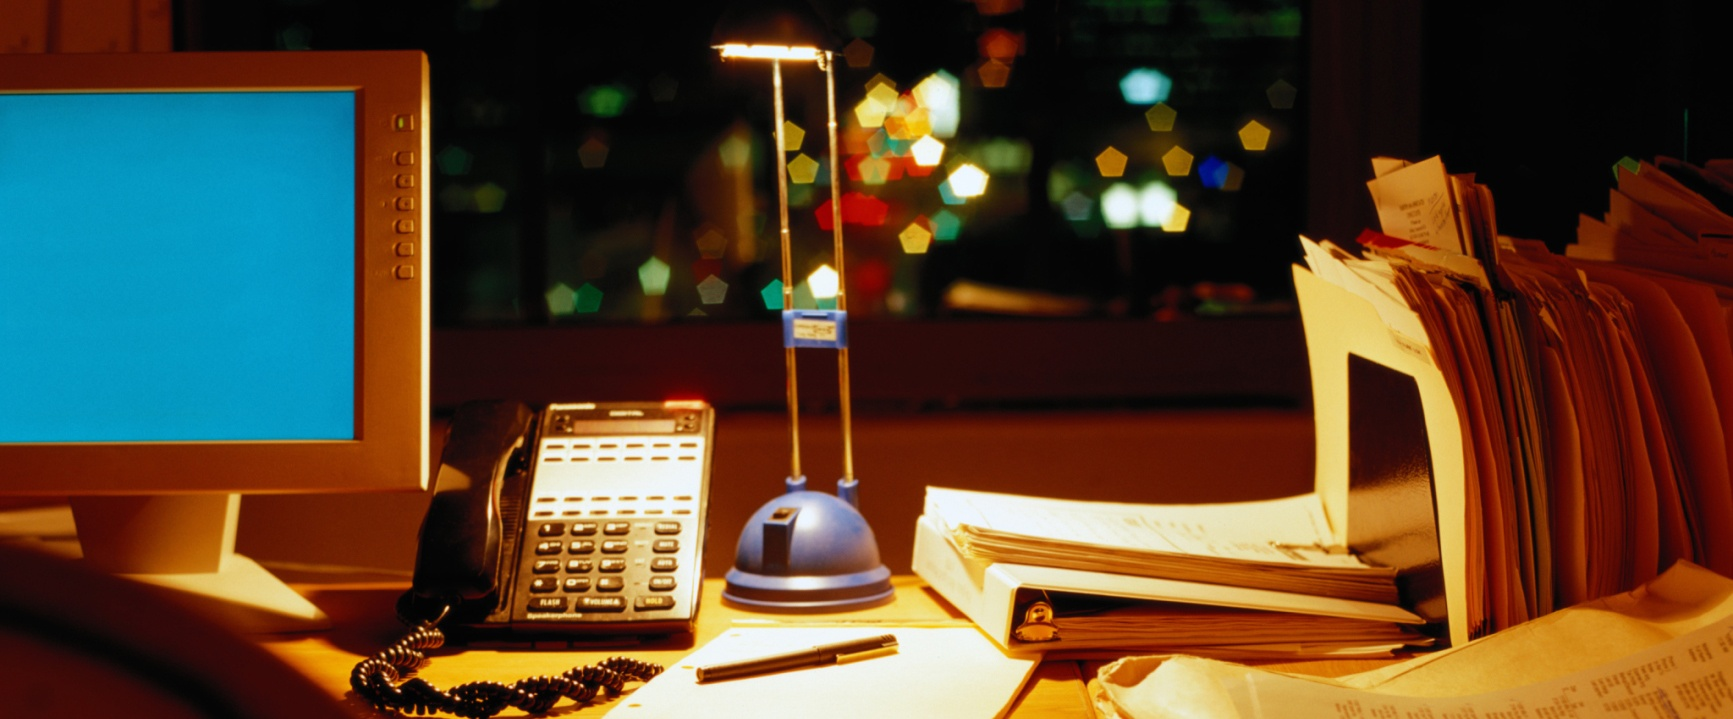 21 Tips to Stay Productive When You're Working at Night